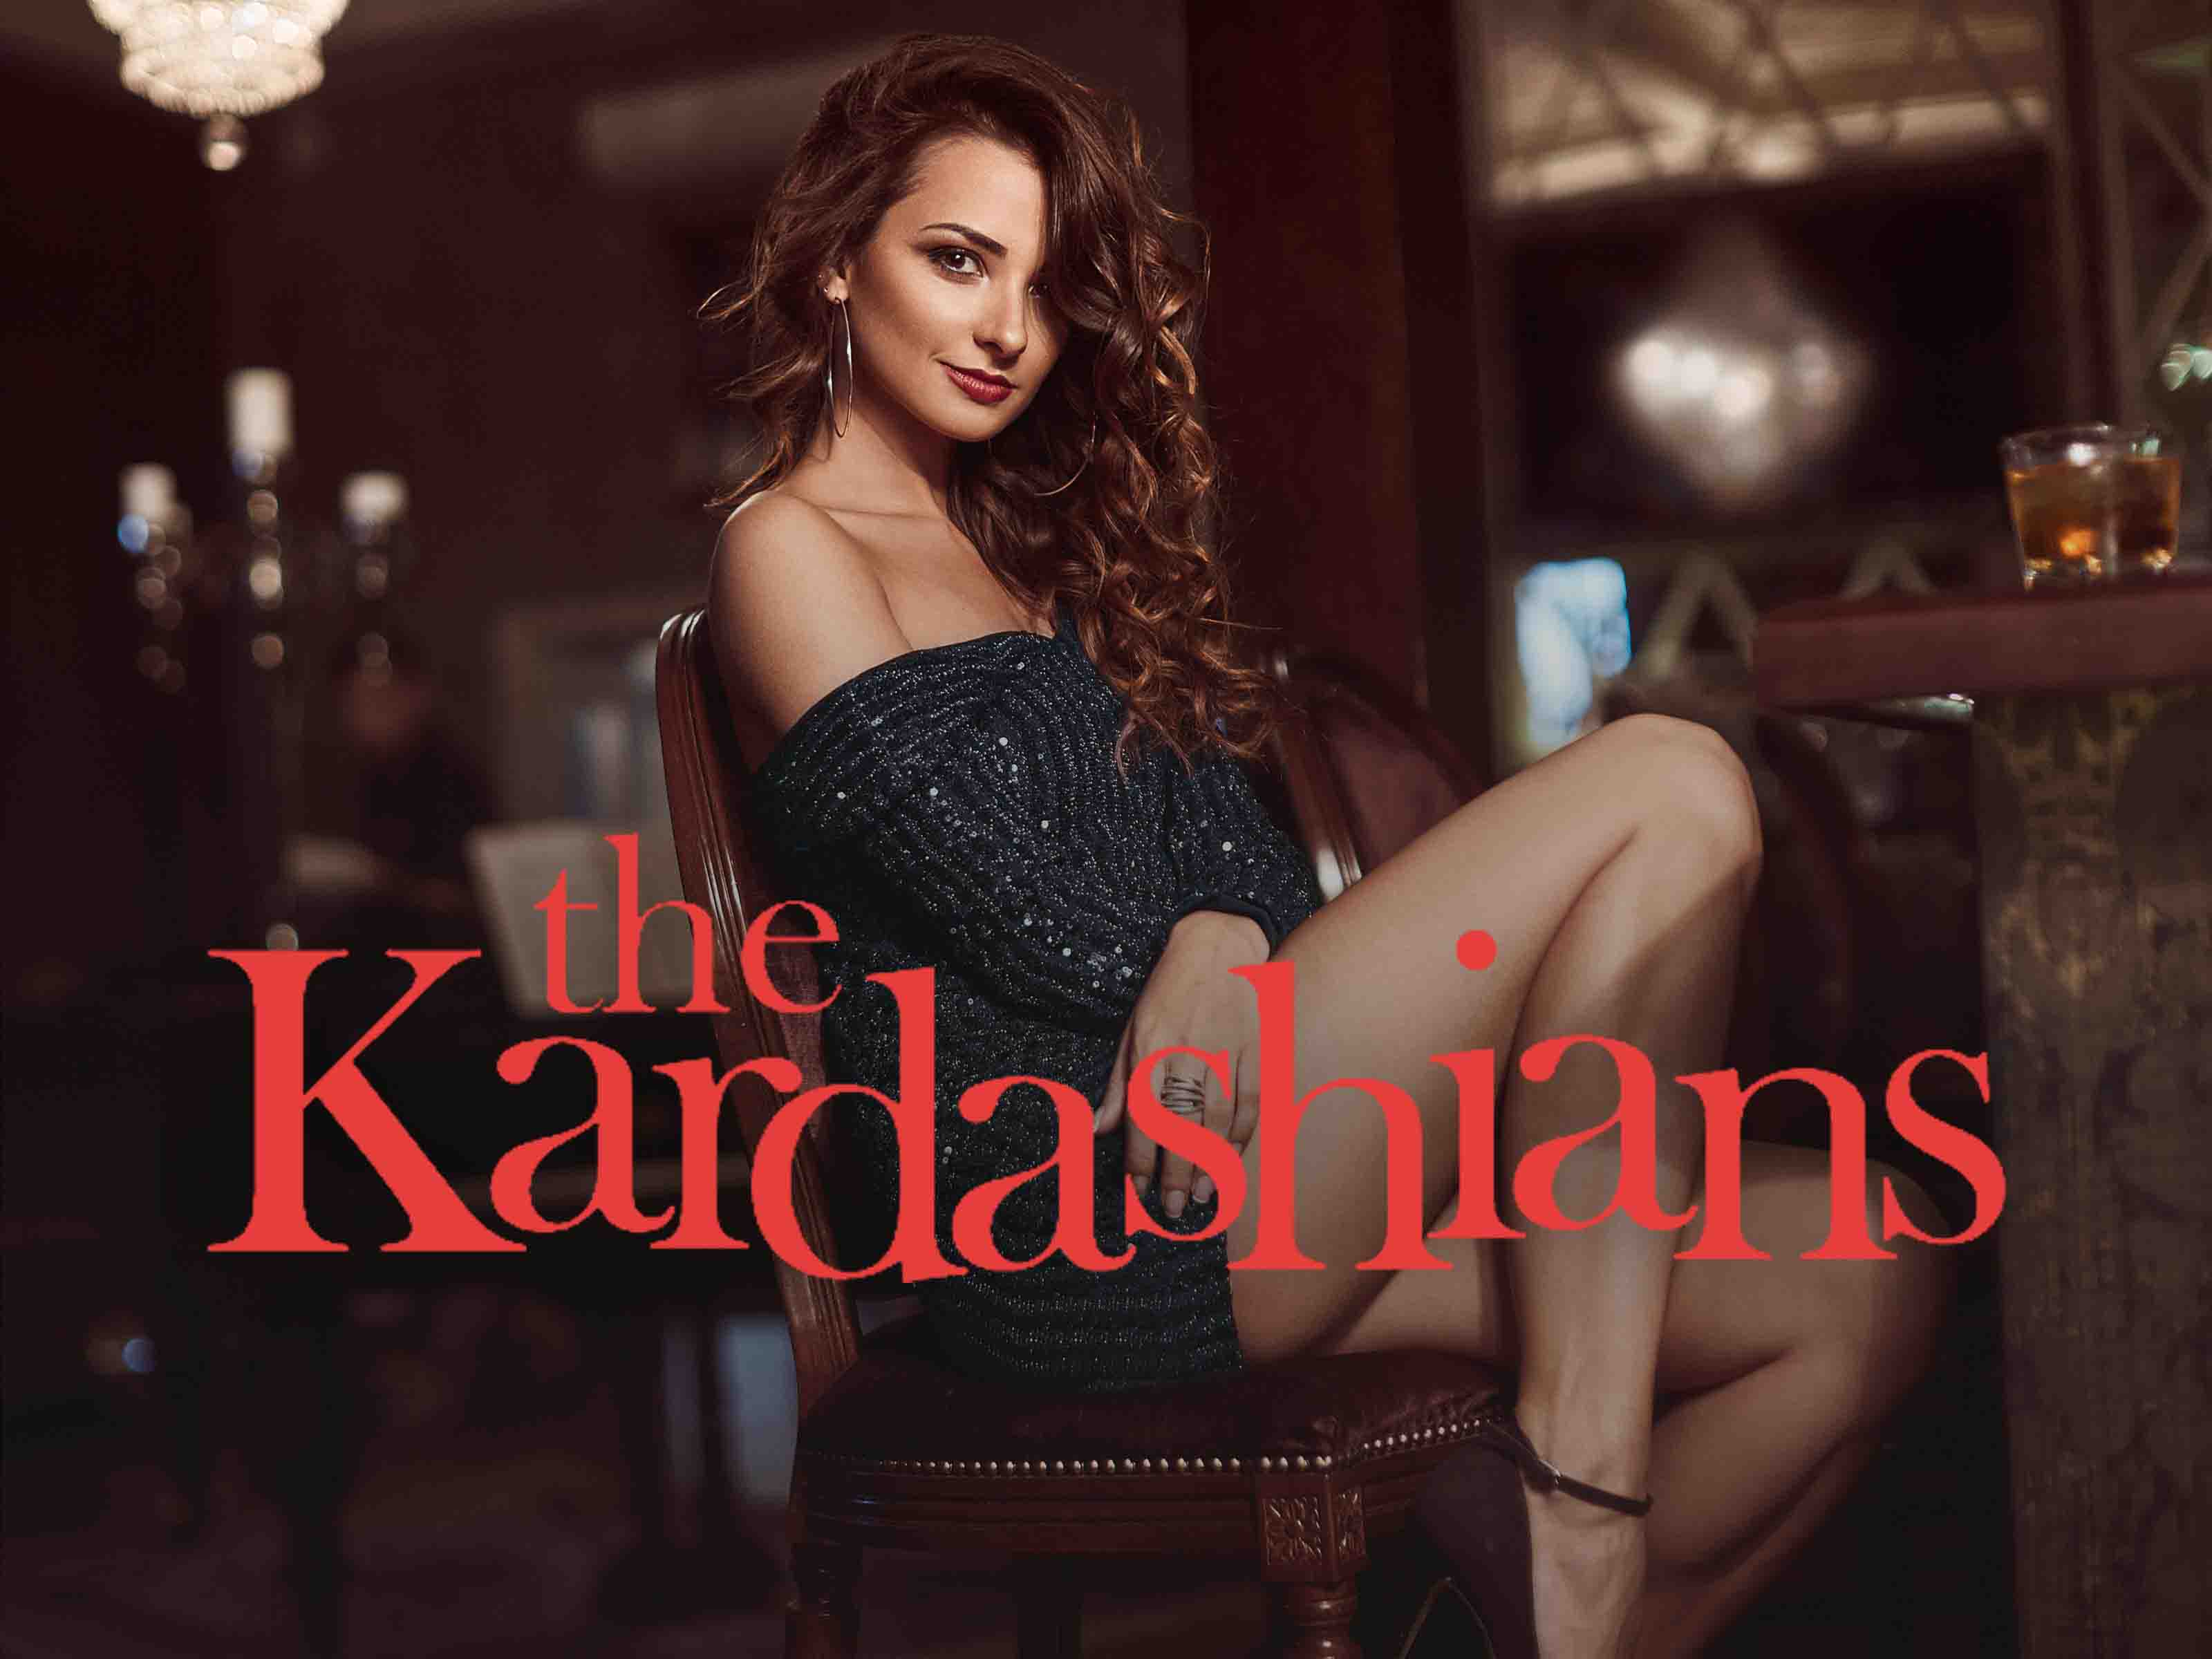 Hen Party Themes - The Kardasians